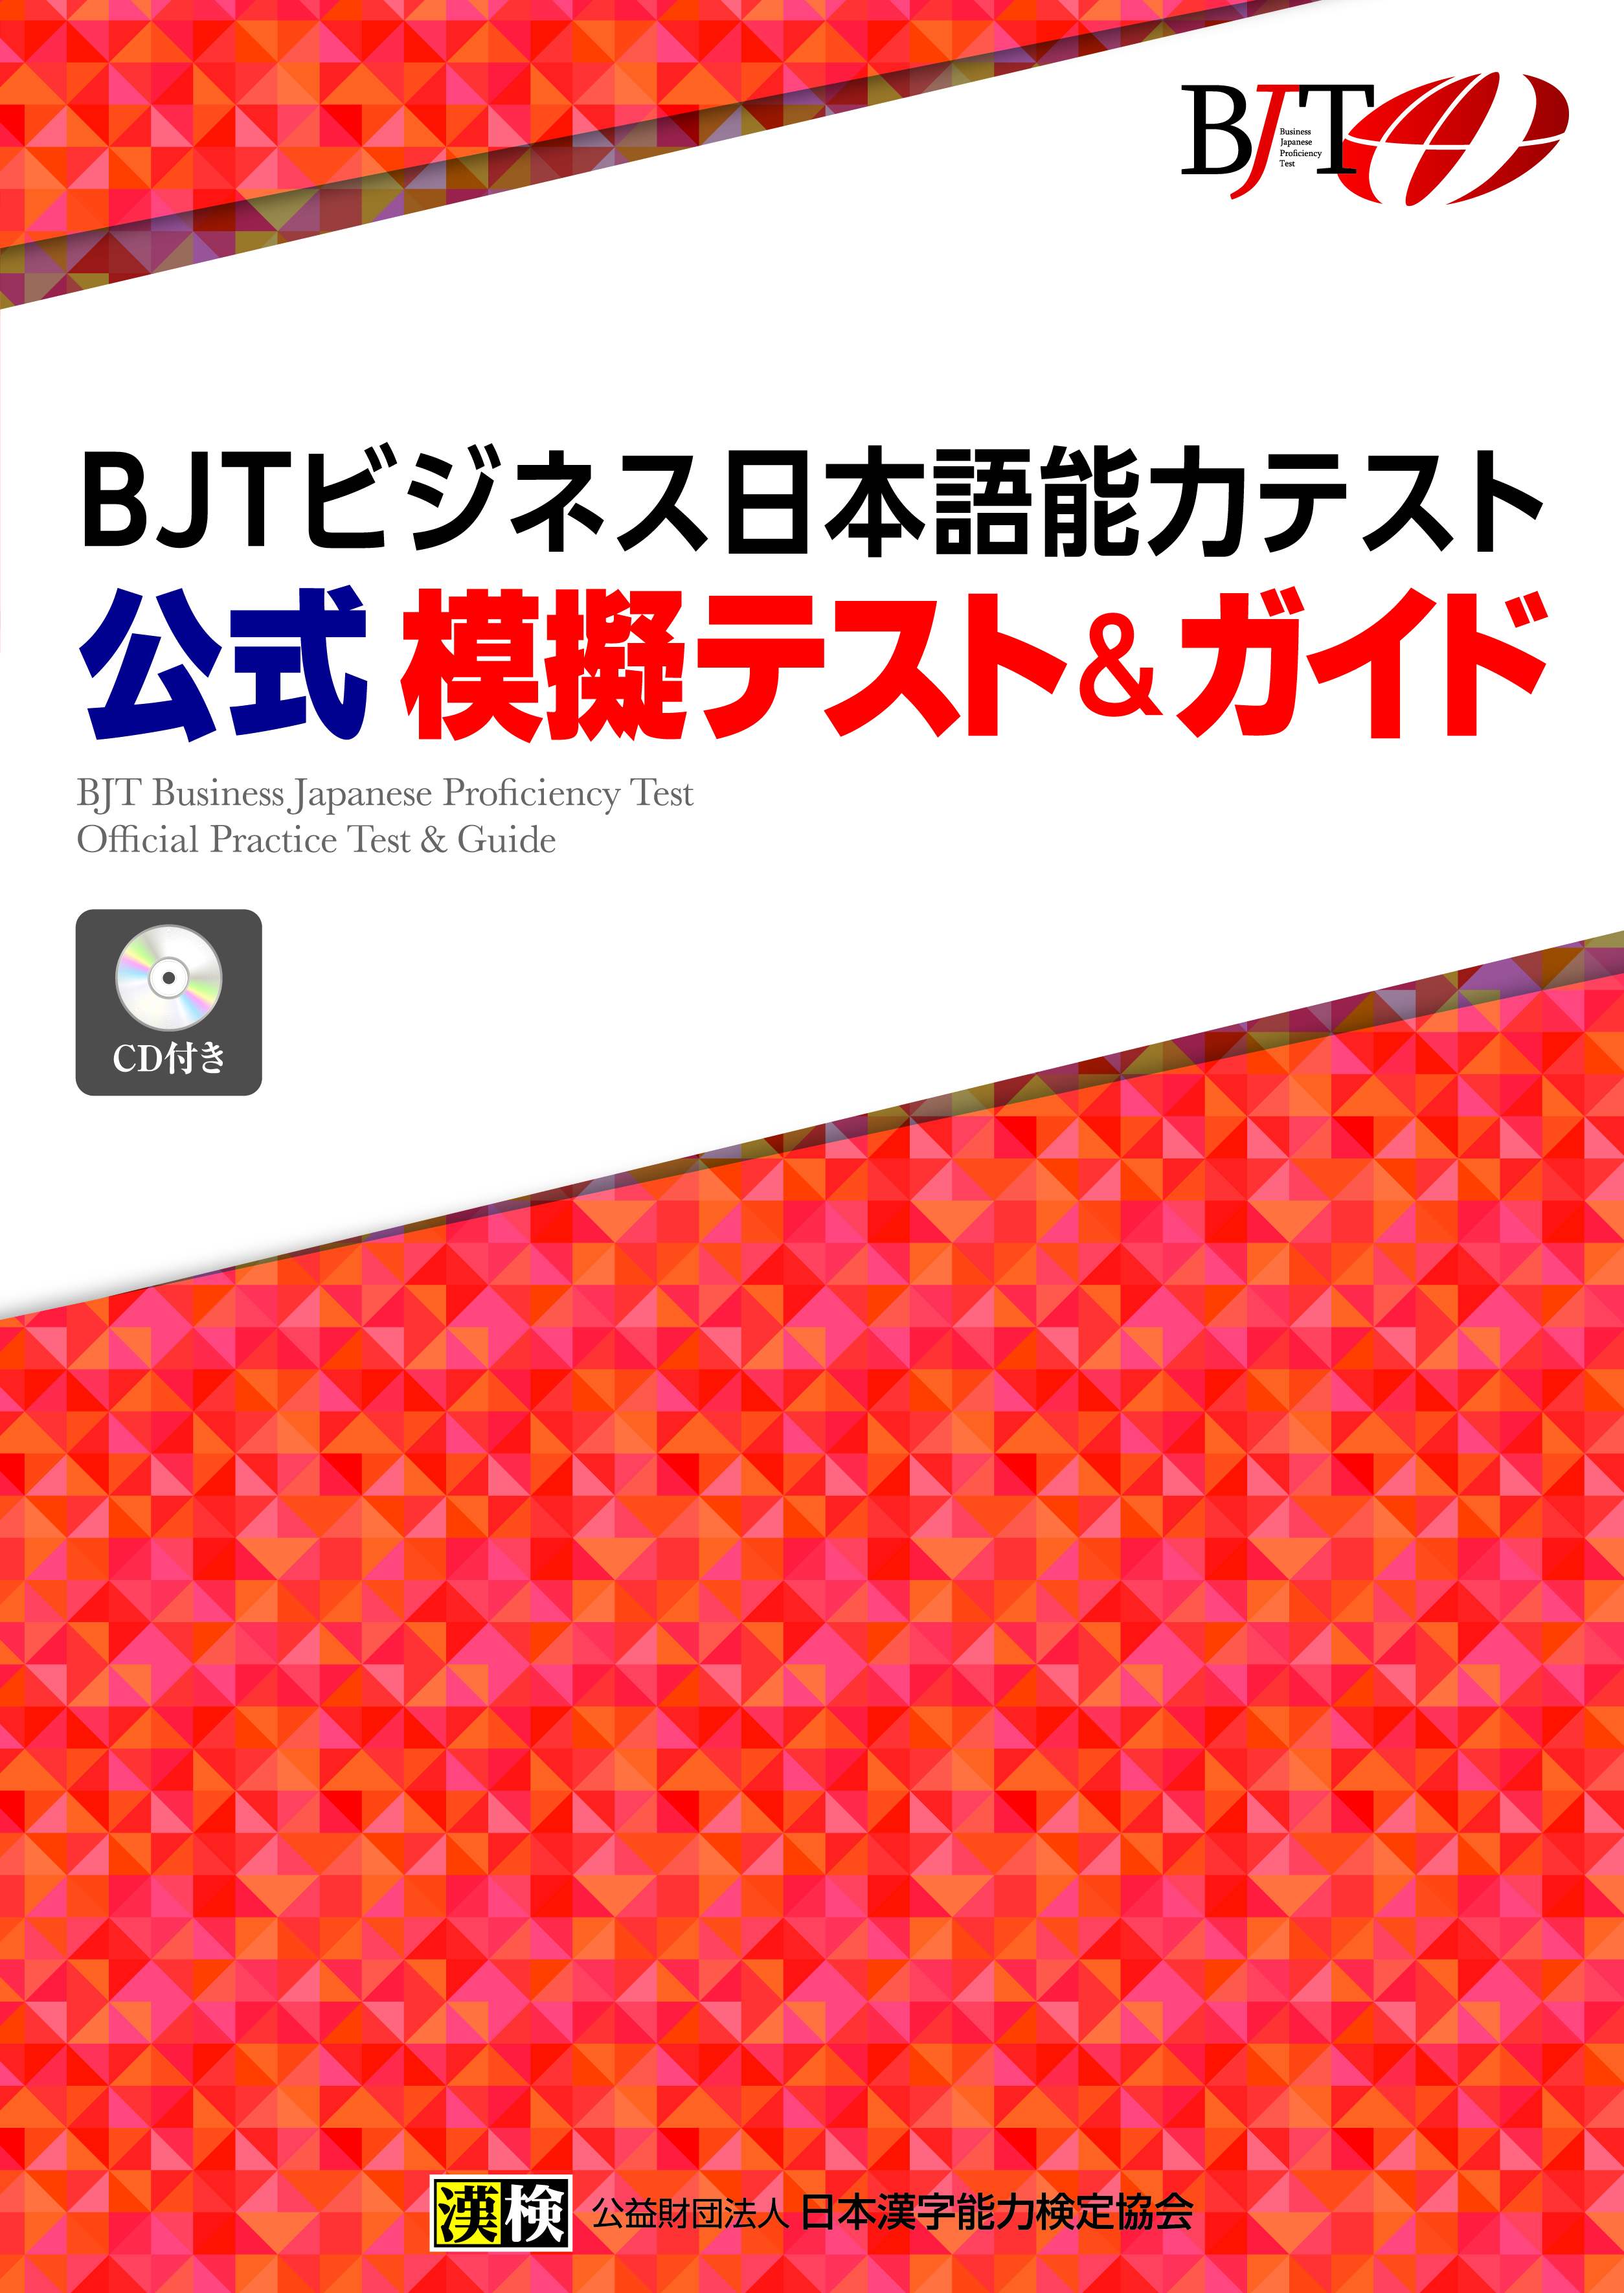 BJT公式模擬テスト&ガイド